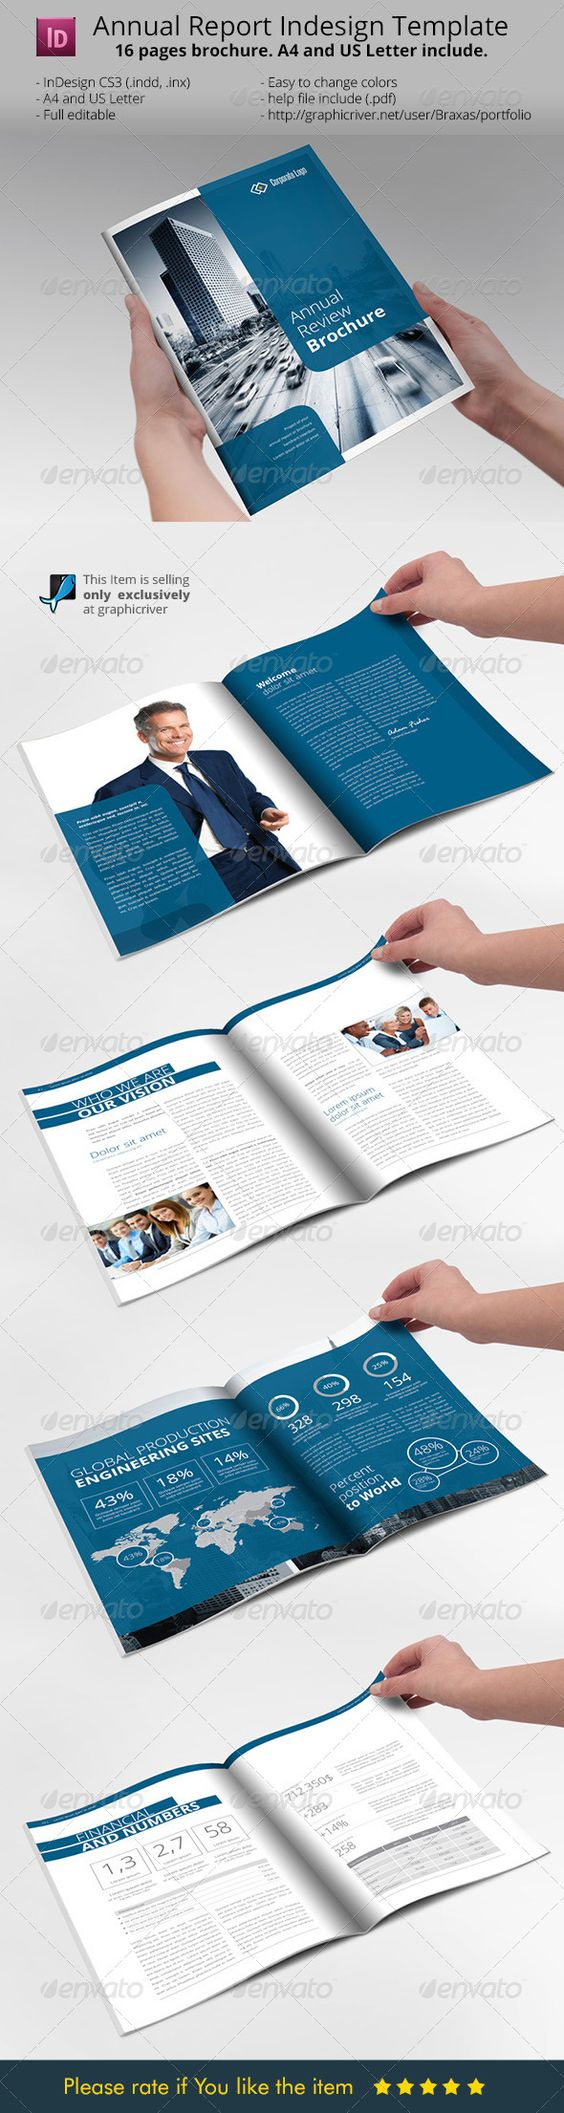 informational brochure templates - annual report brochure indesign template design